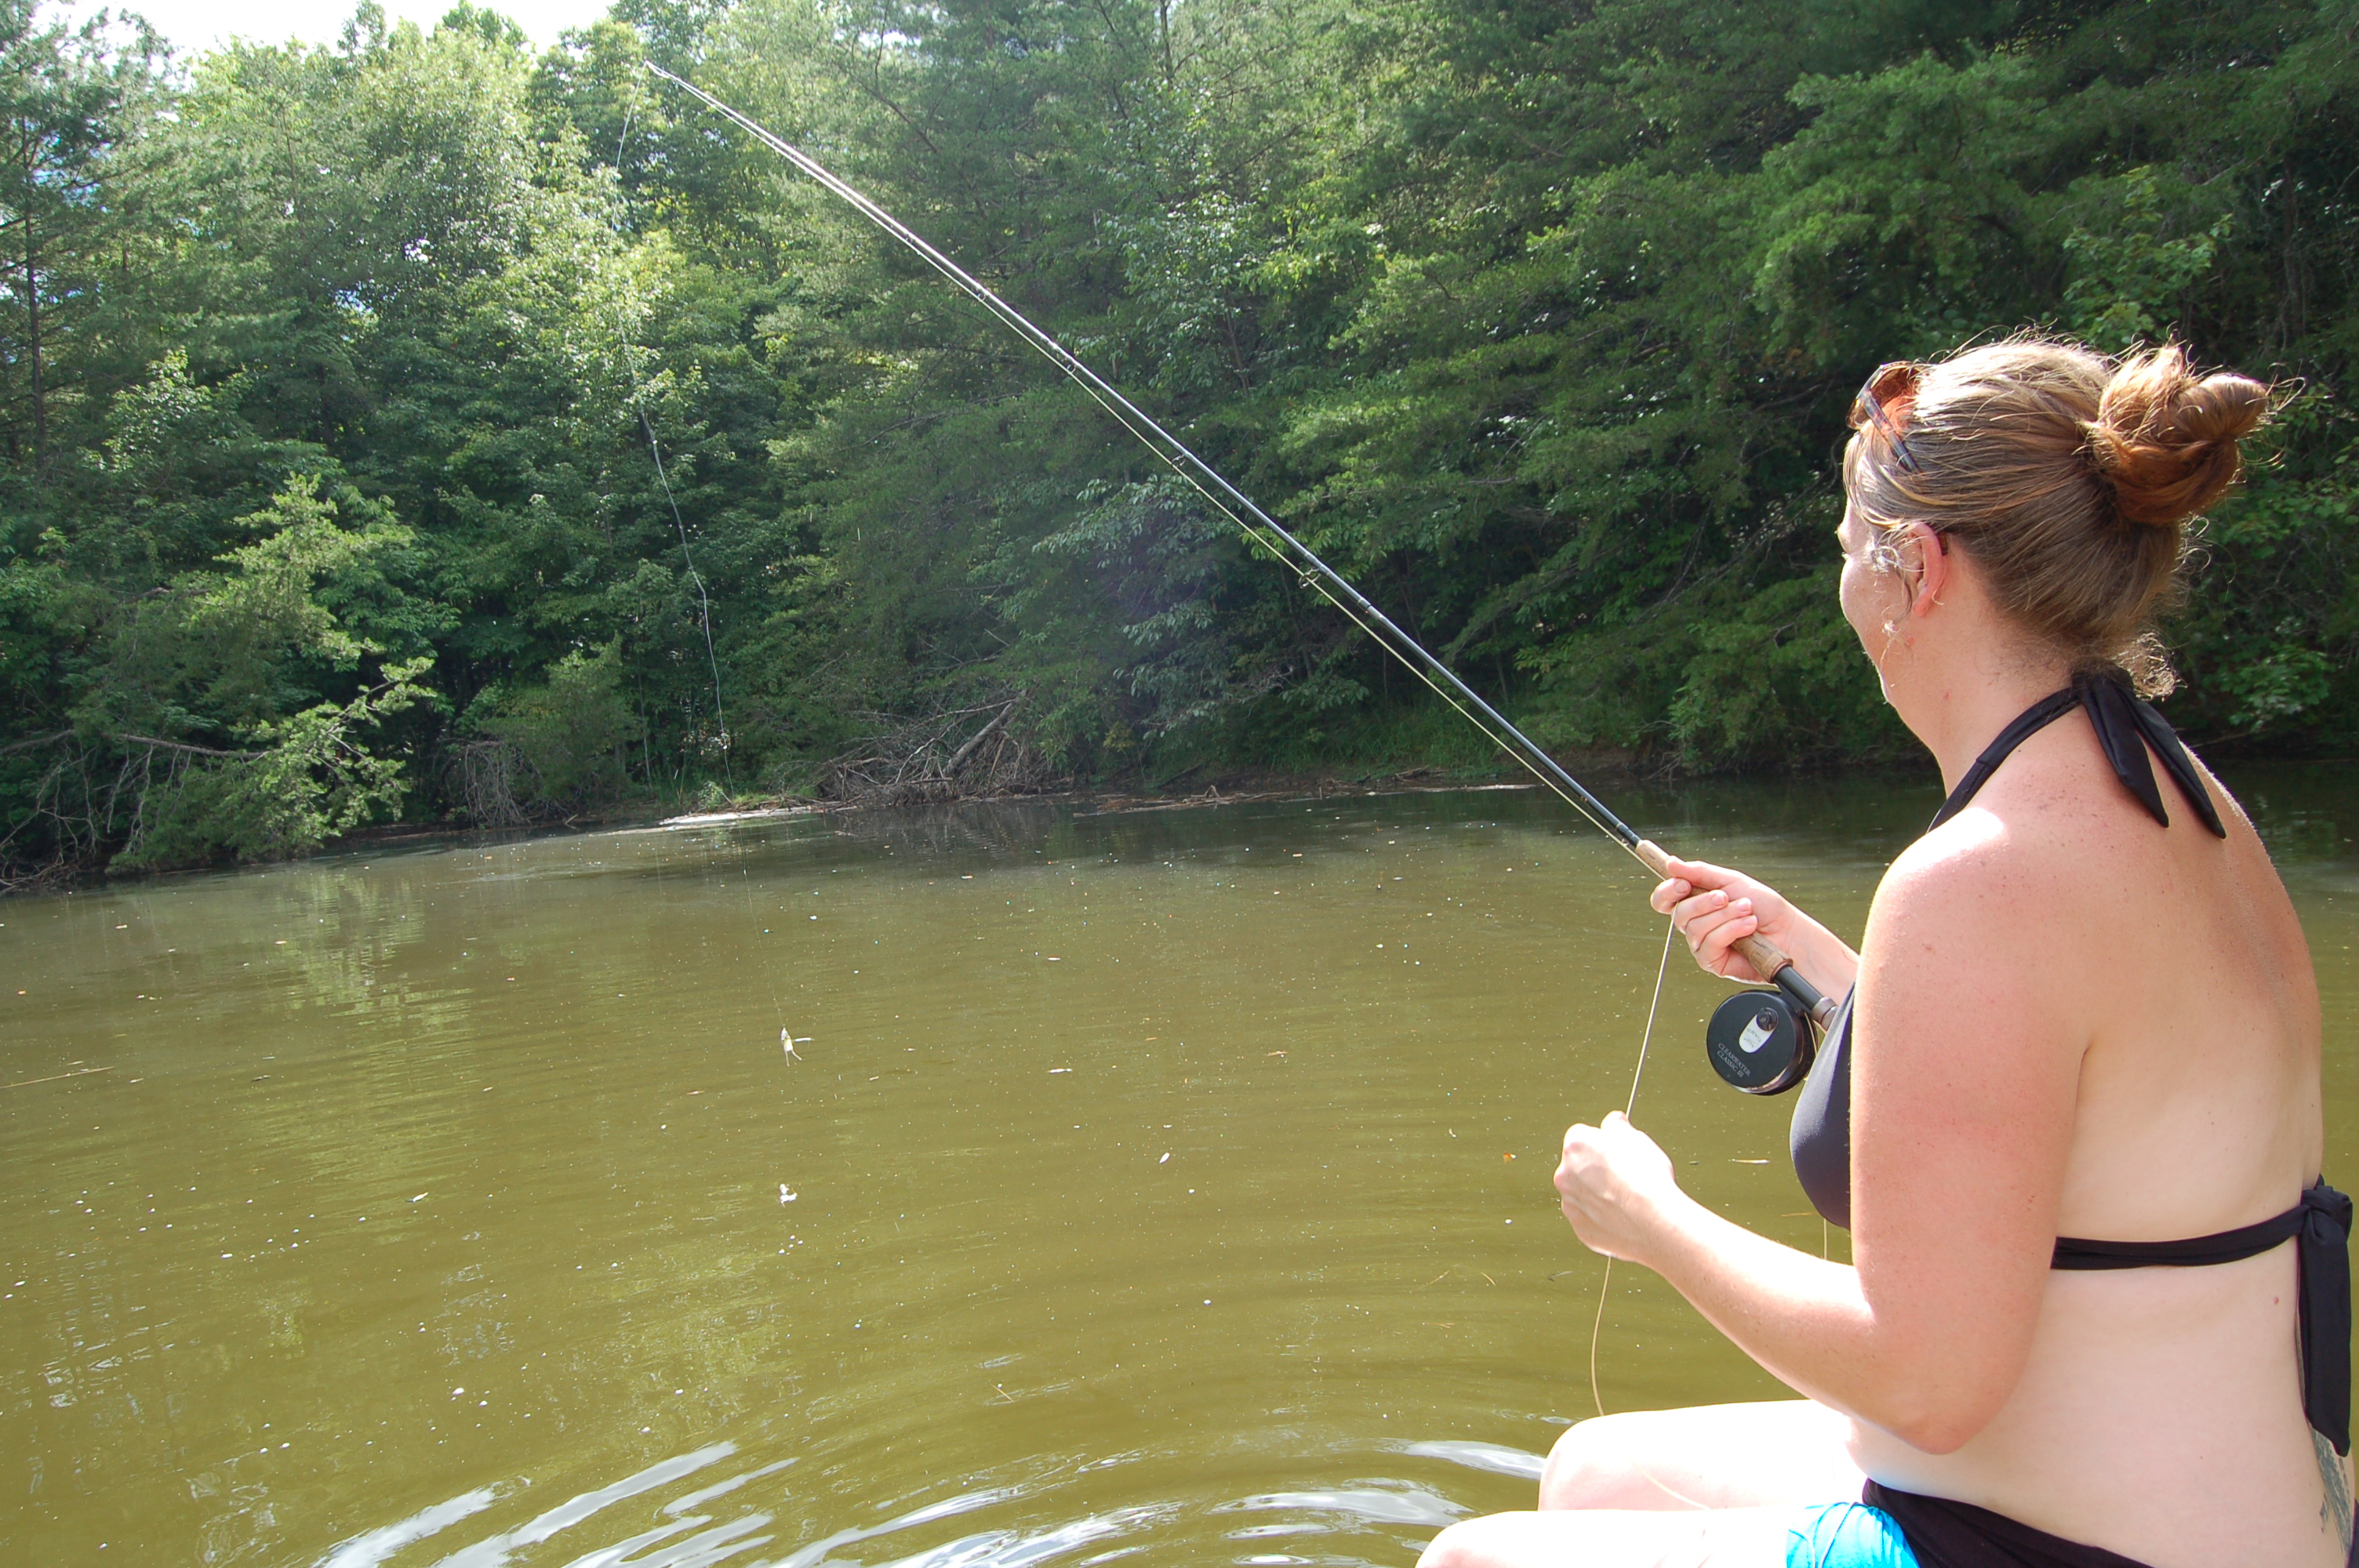 ... Fly Fishing; more Hillbilly SUP fishing pics – The Fiddle and Creel Fly Fishing Rods